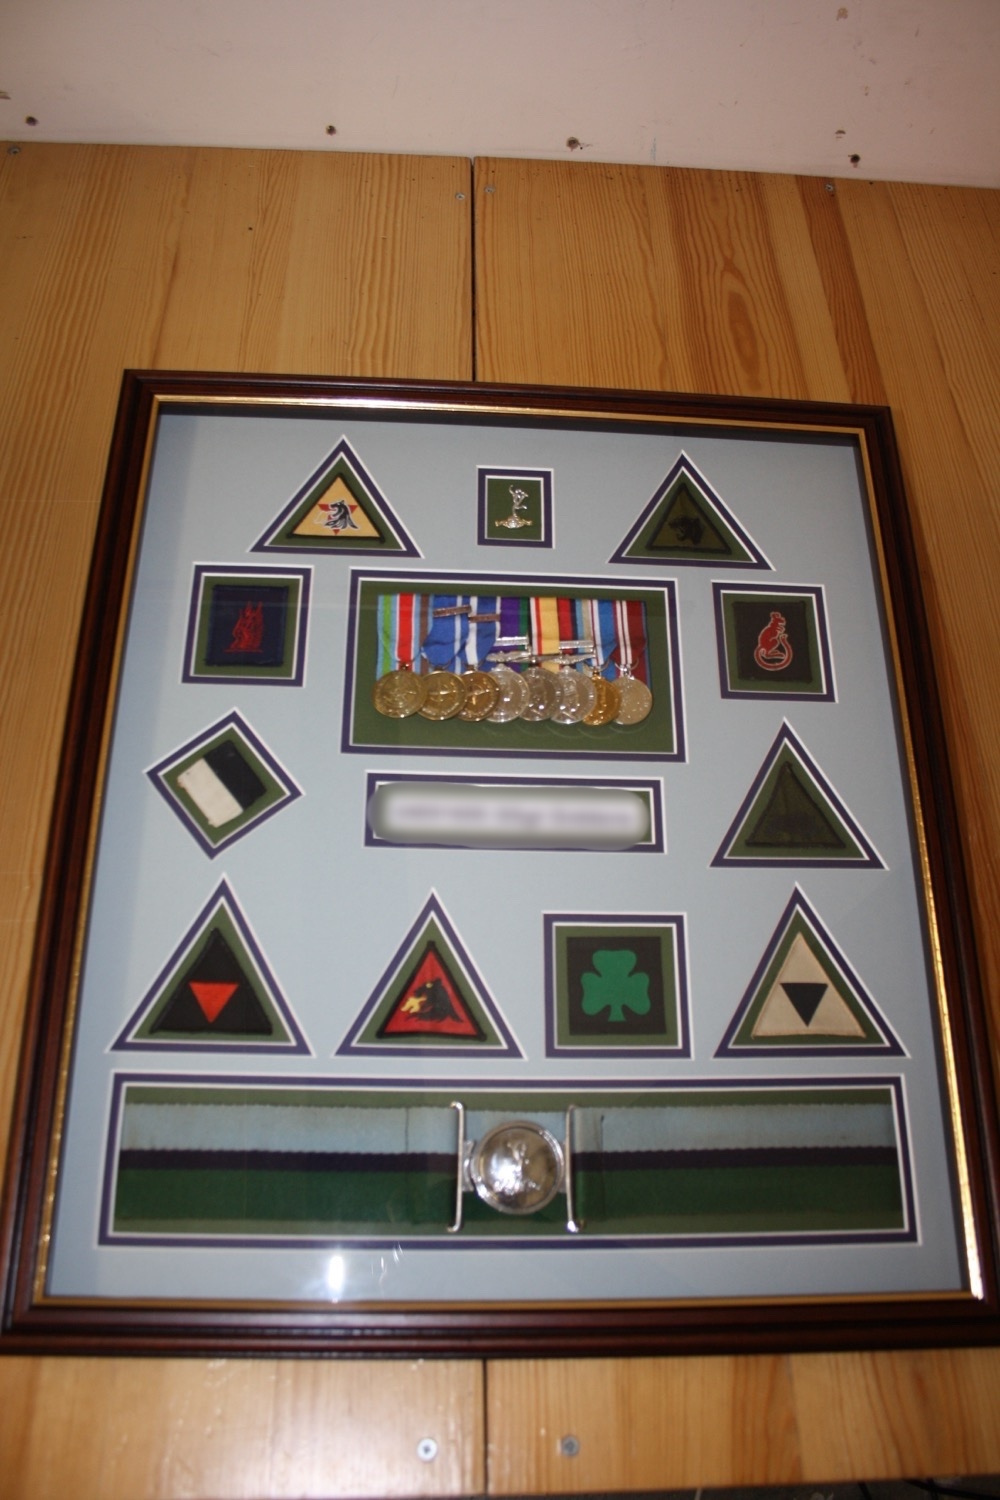 hampshire-picture-framing-medals-005.JPG